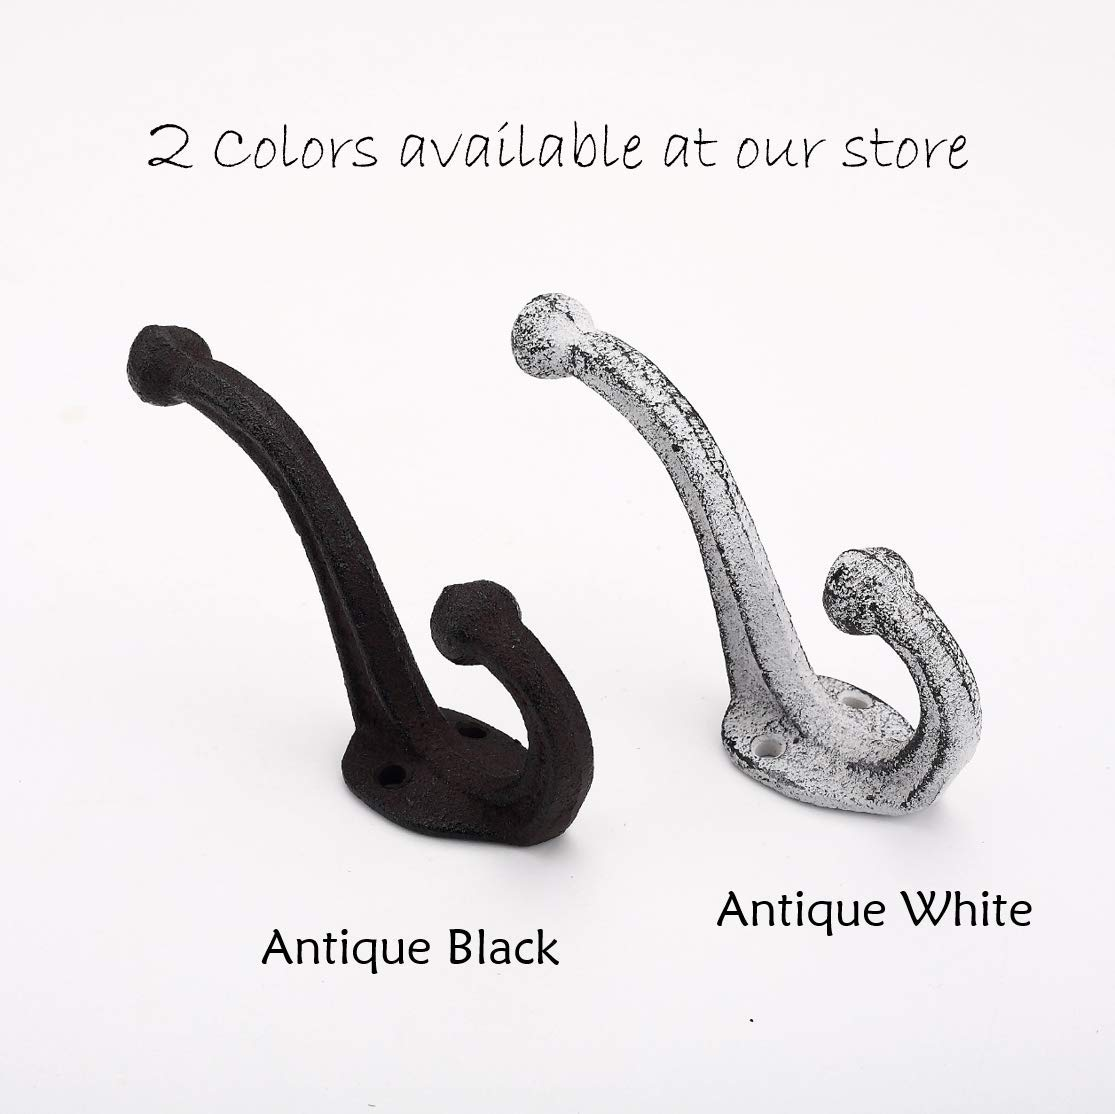 Wall Mounted Coat Hooks Bags Antique Black Ambipolar Decorative Rustic Cast Iron Towels Coats Vintage Inspired Modern Farmhouse Set of 5 Hats